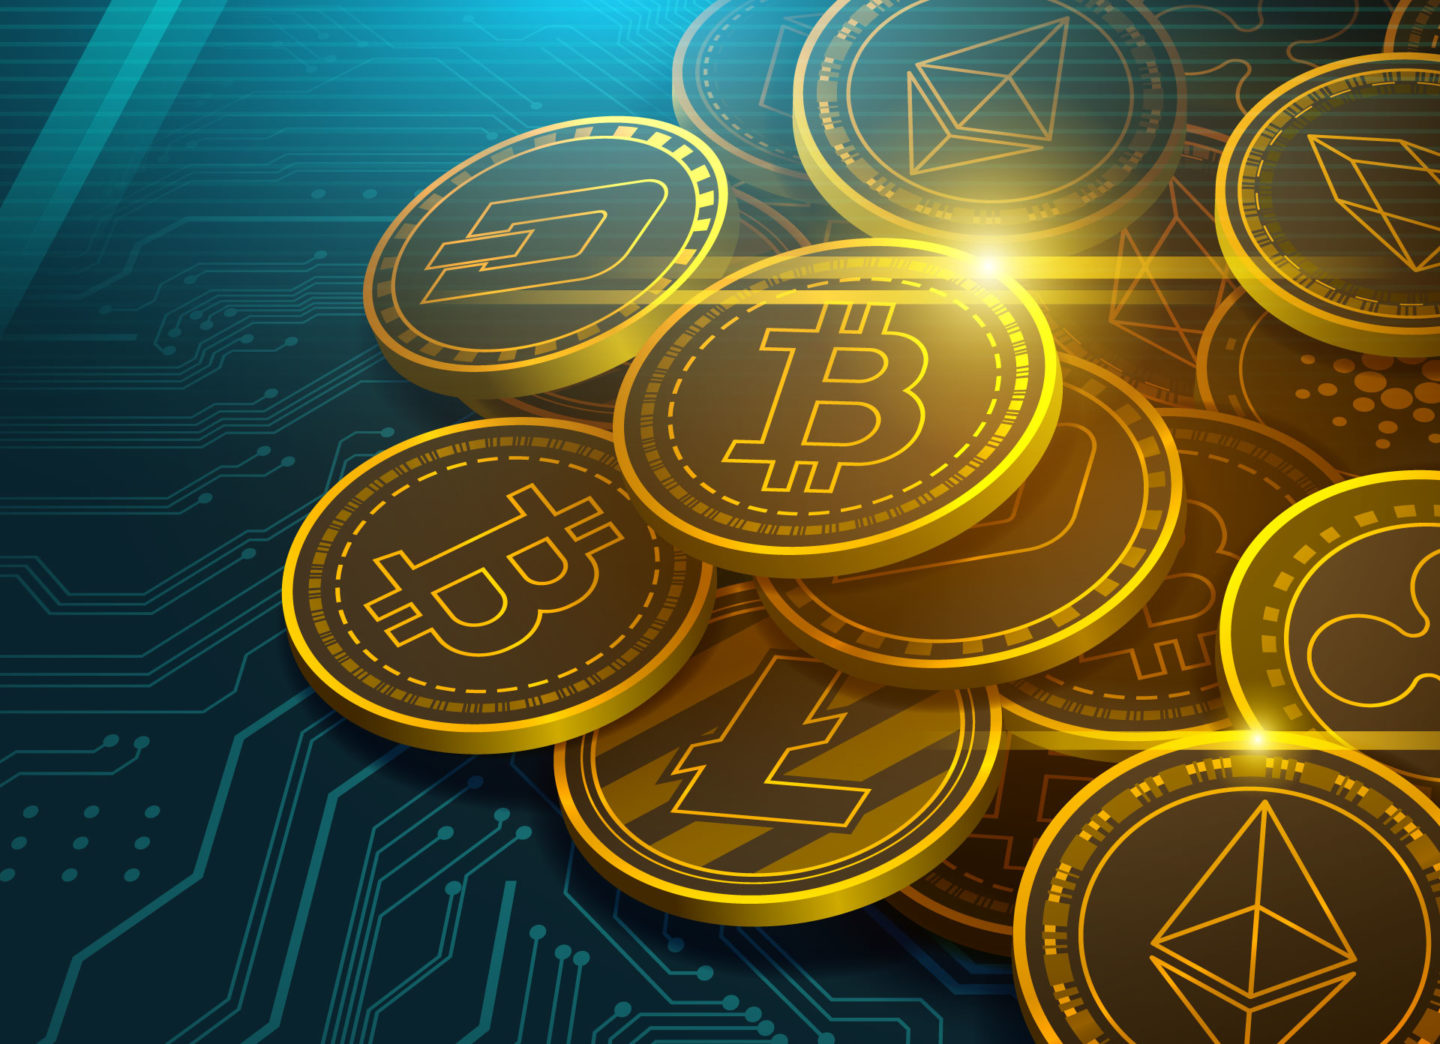 How China's statement crashed bitcoins, others